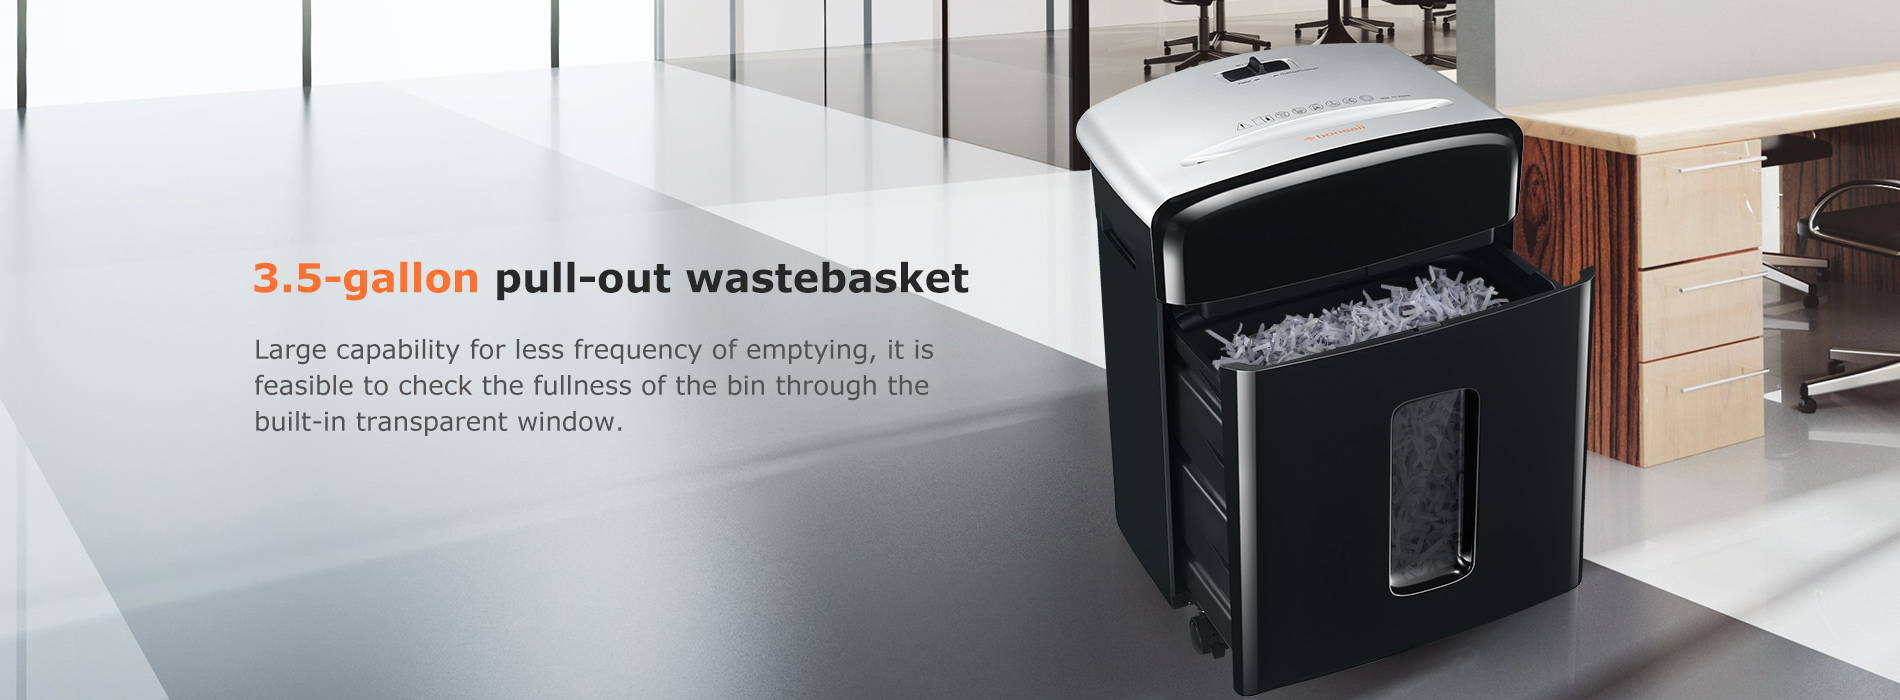 3.5-gallon pull-out wastebasket Large capability for less frequency of emptying, it is feasible to check the fullness of the bin through the built-in transparent window.